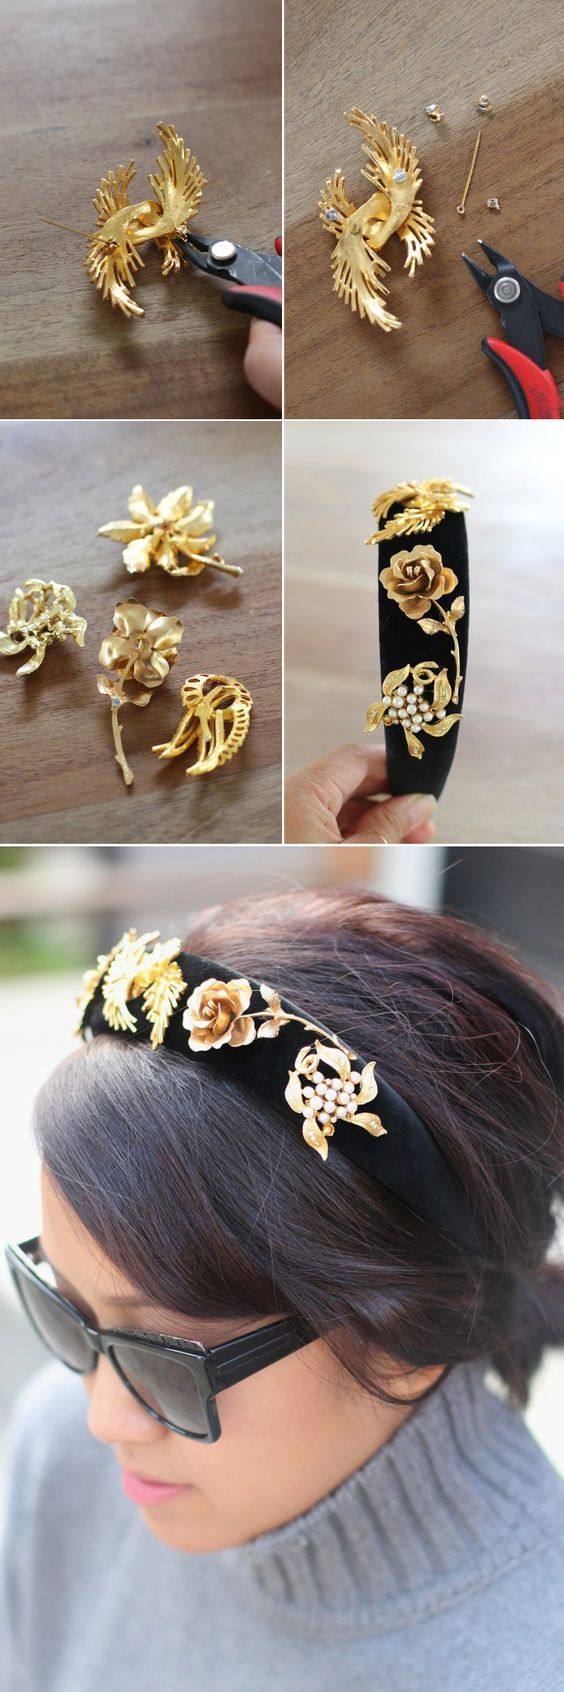 19 best diy dolce and gabbana images on pinterest | hairstyles